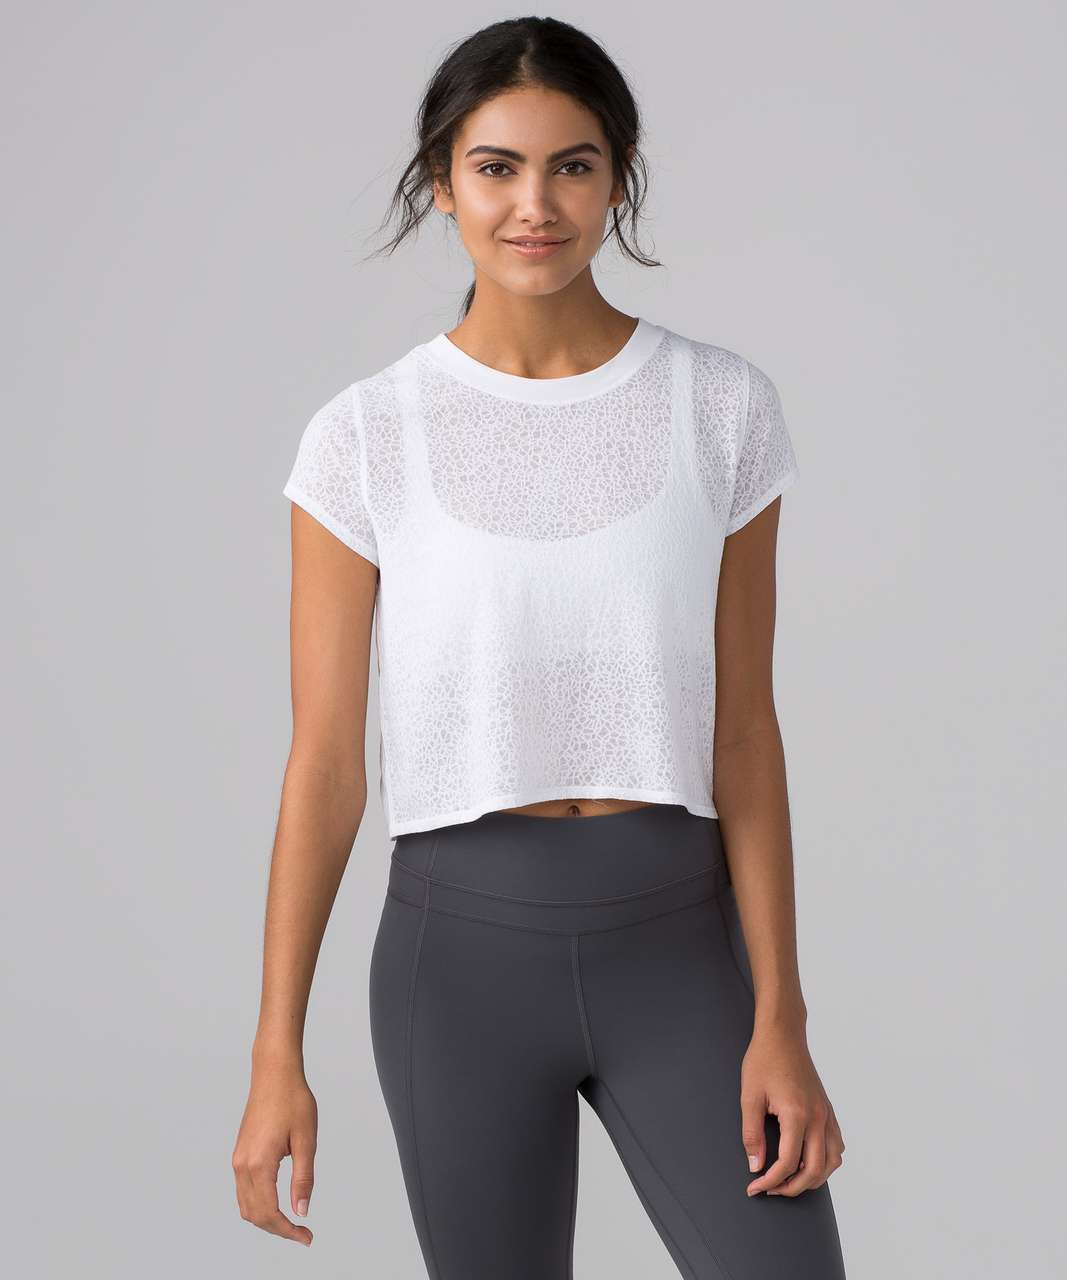 Lululemon Hint of Sheer Tee - White - lulu fanatics